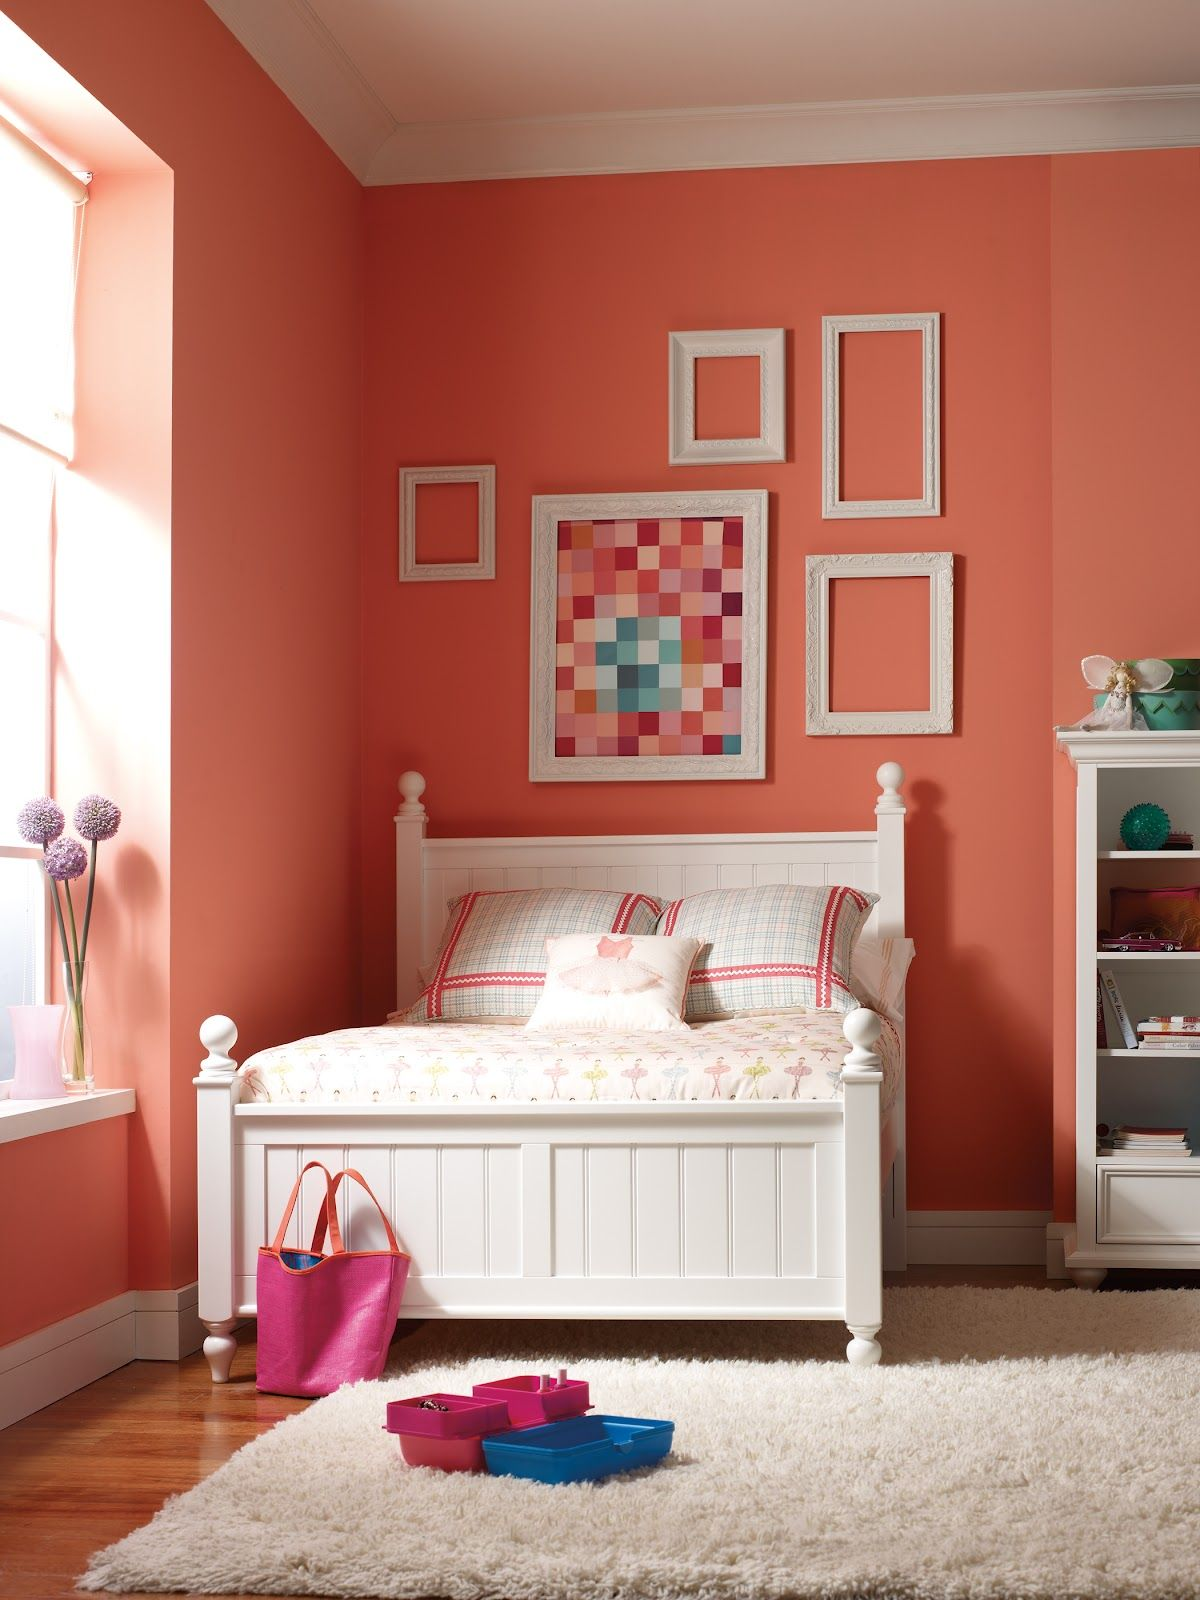 Peach Colored Bedrooms What Color To Compliments Cream Colored Painted Walls Trendy